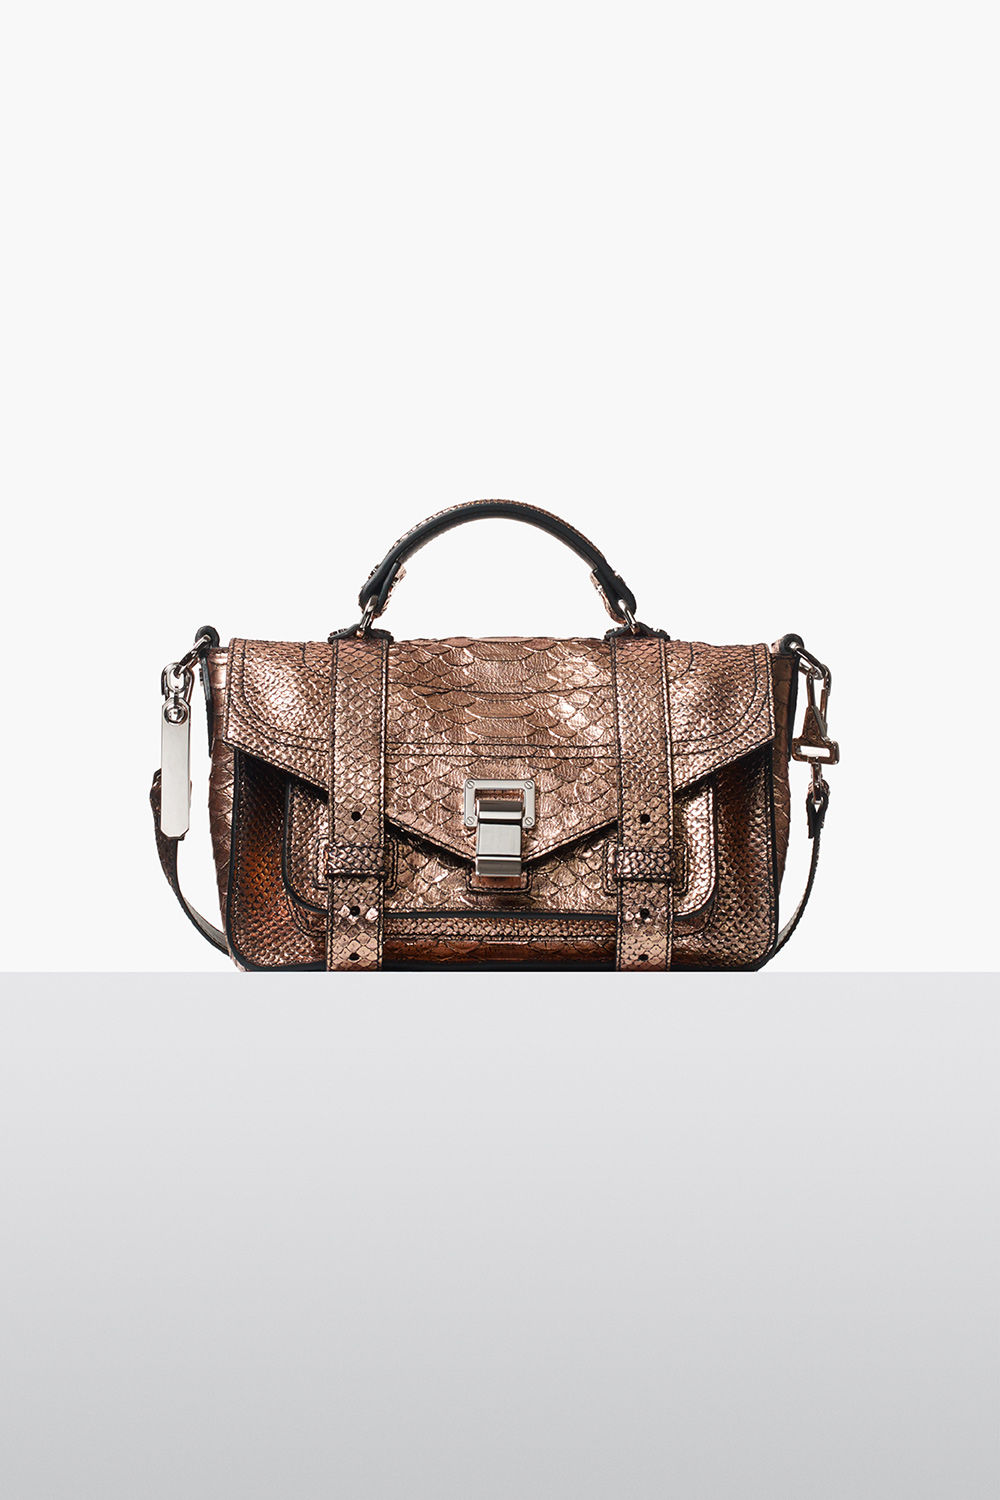 proenza schouler fall 2017 rose gold metallic embossed python ps1+ tiny bag